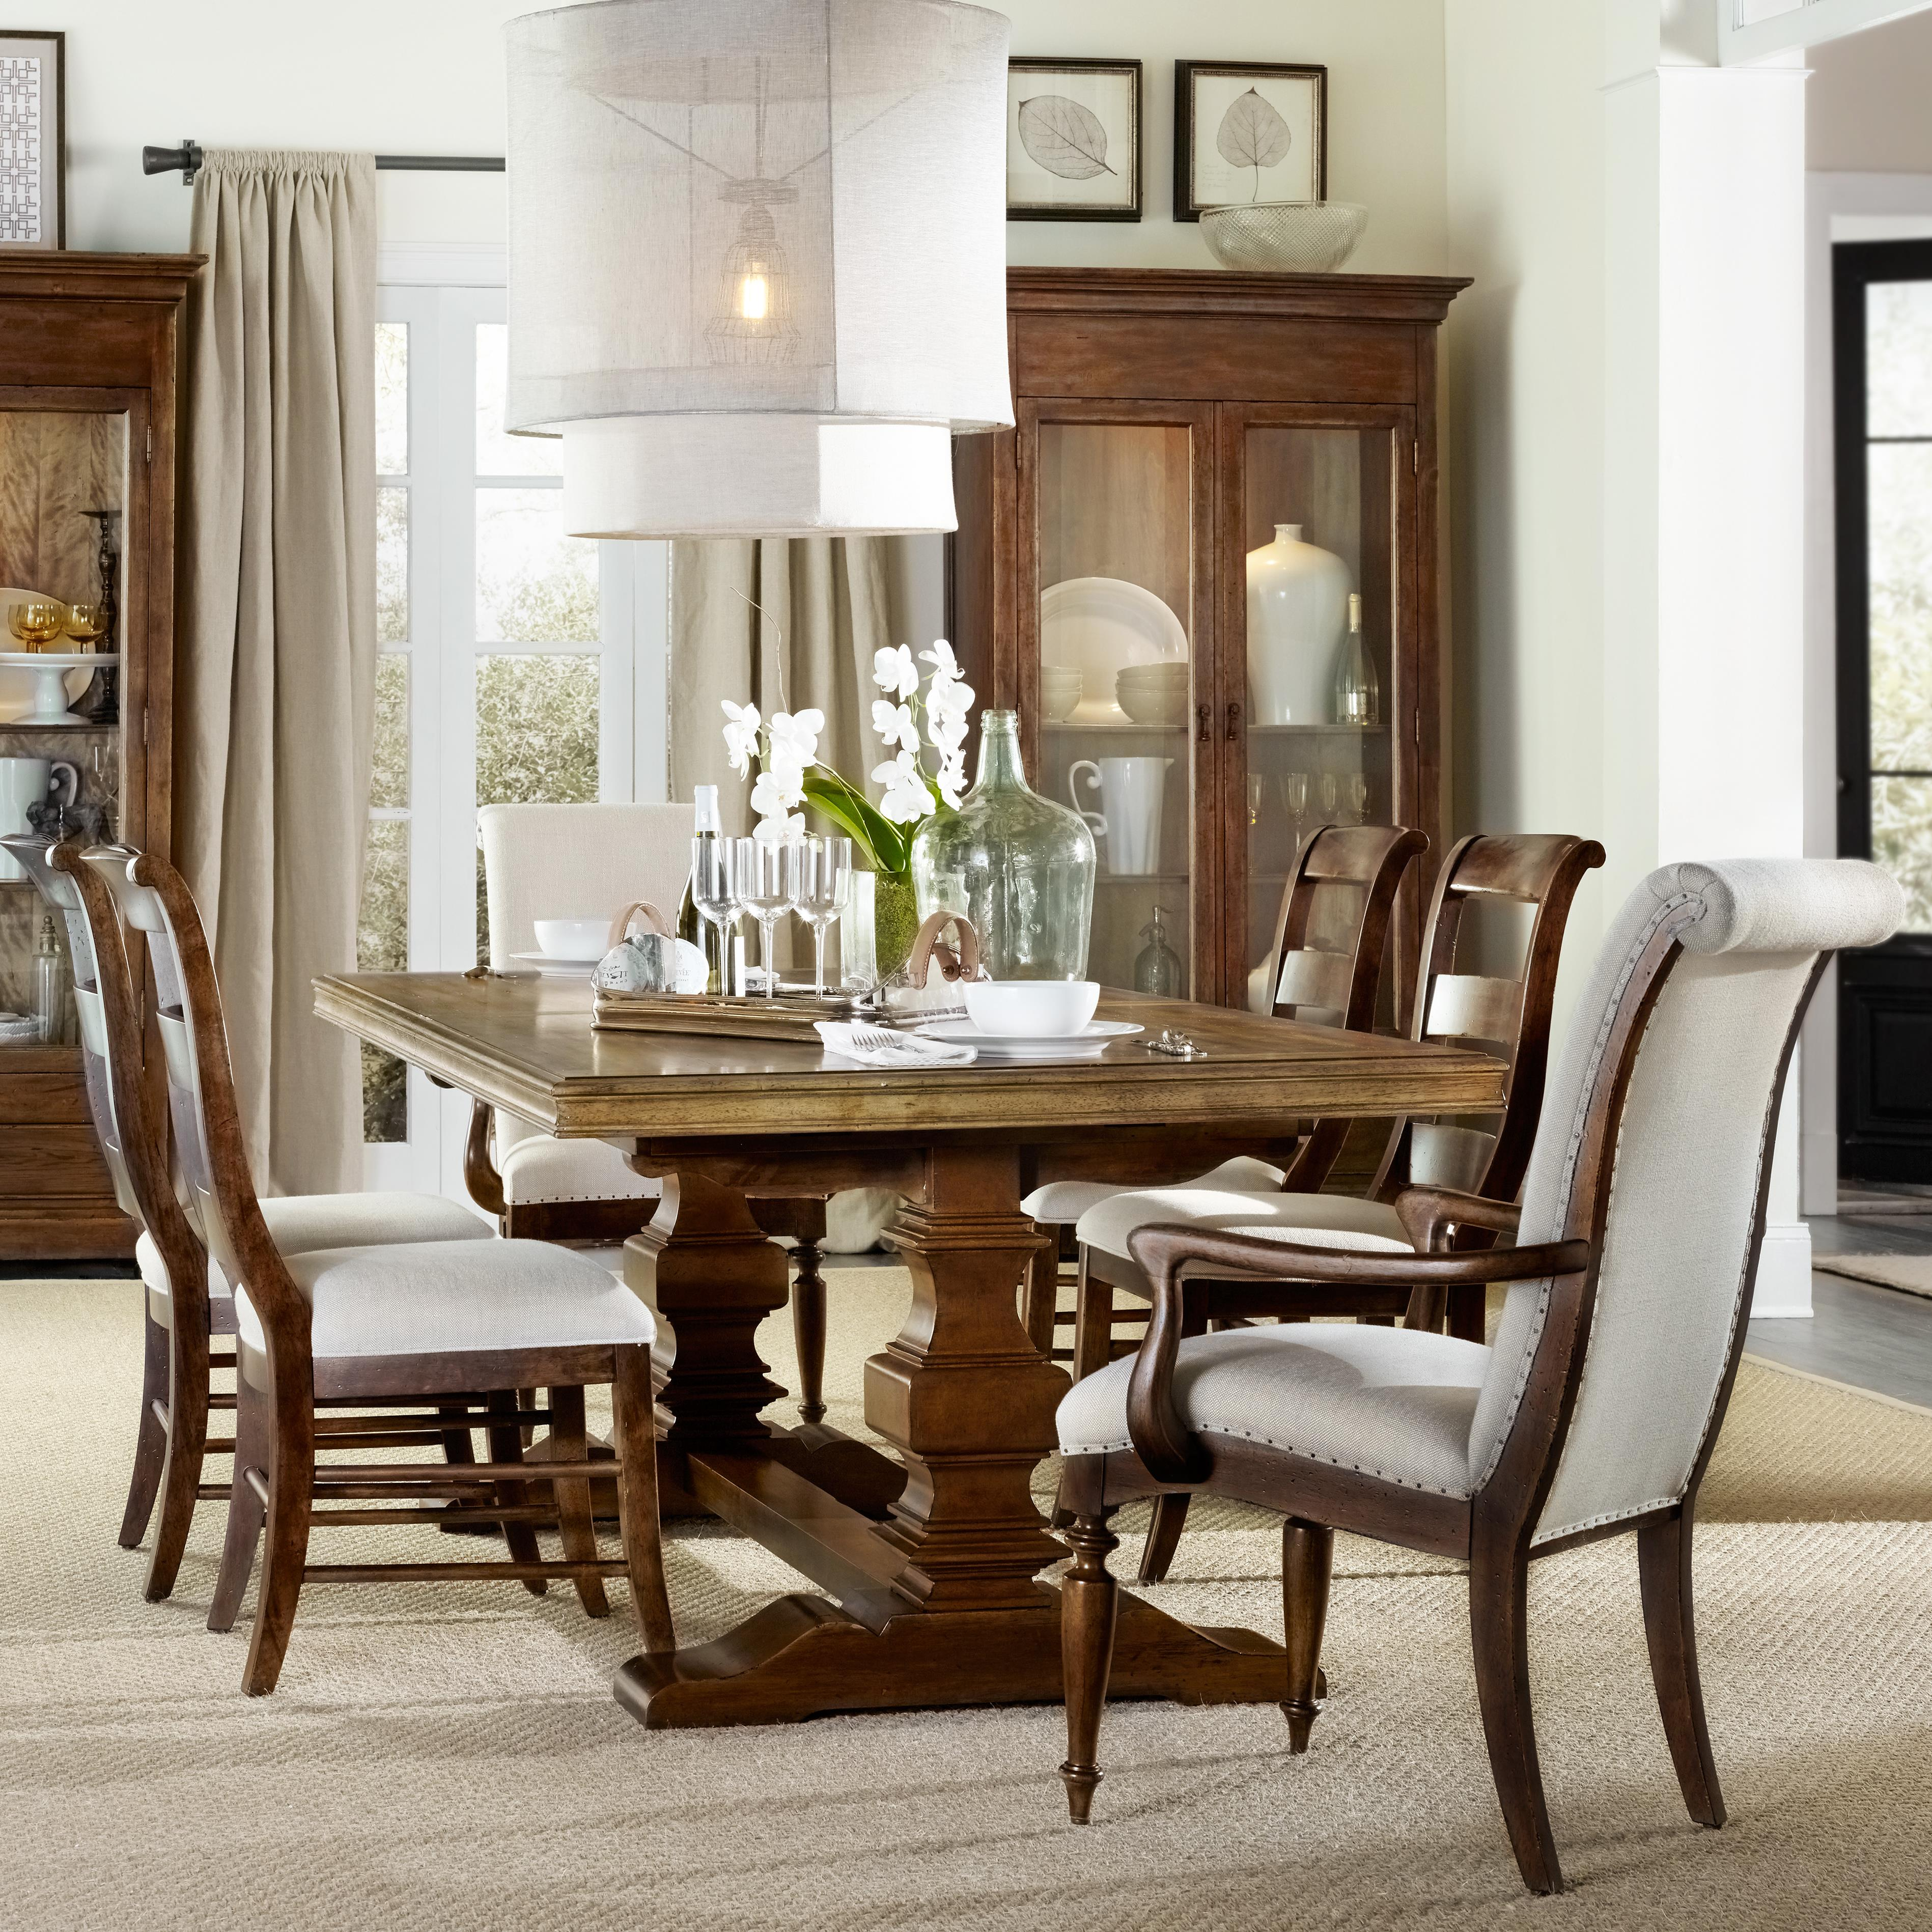 Lovely 7 Piece Dining Set With Trestle Table